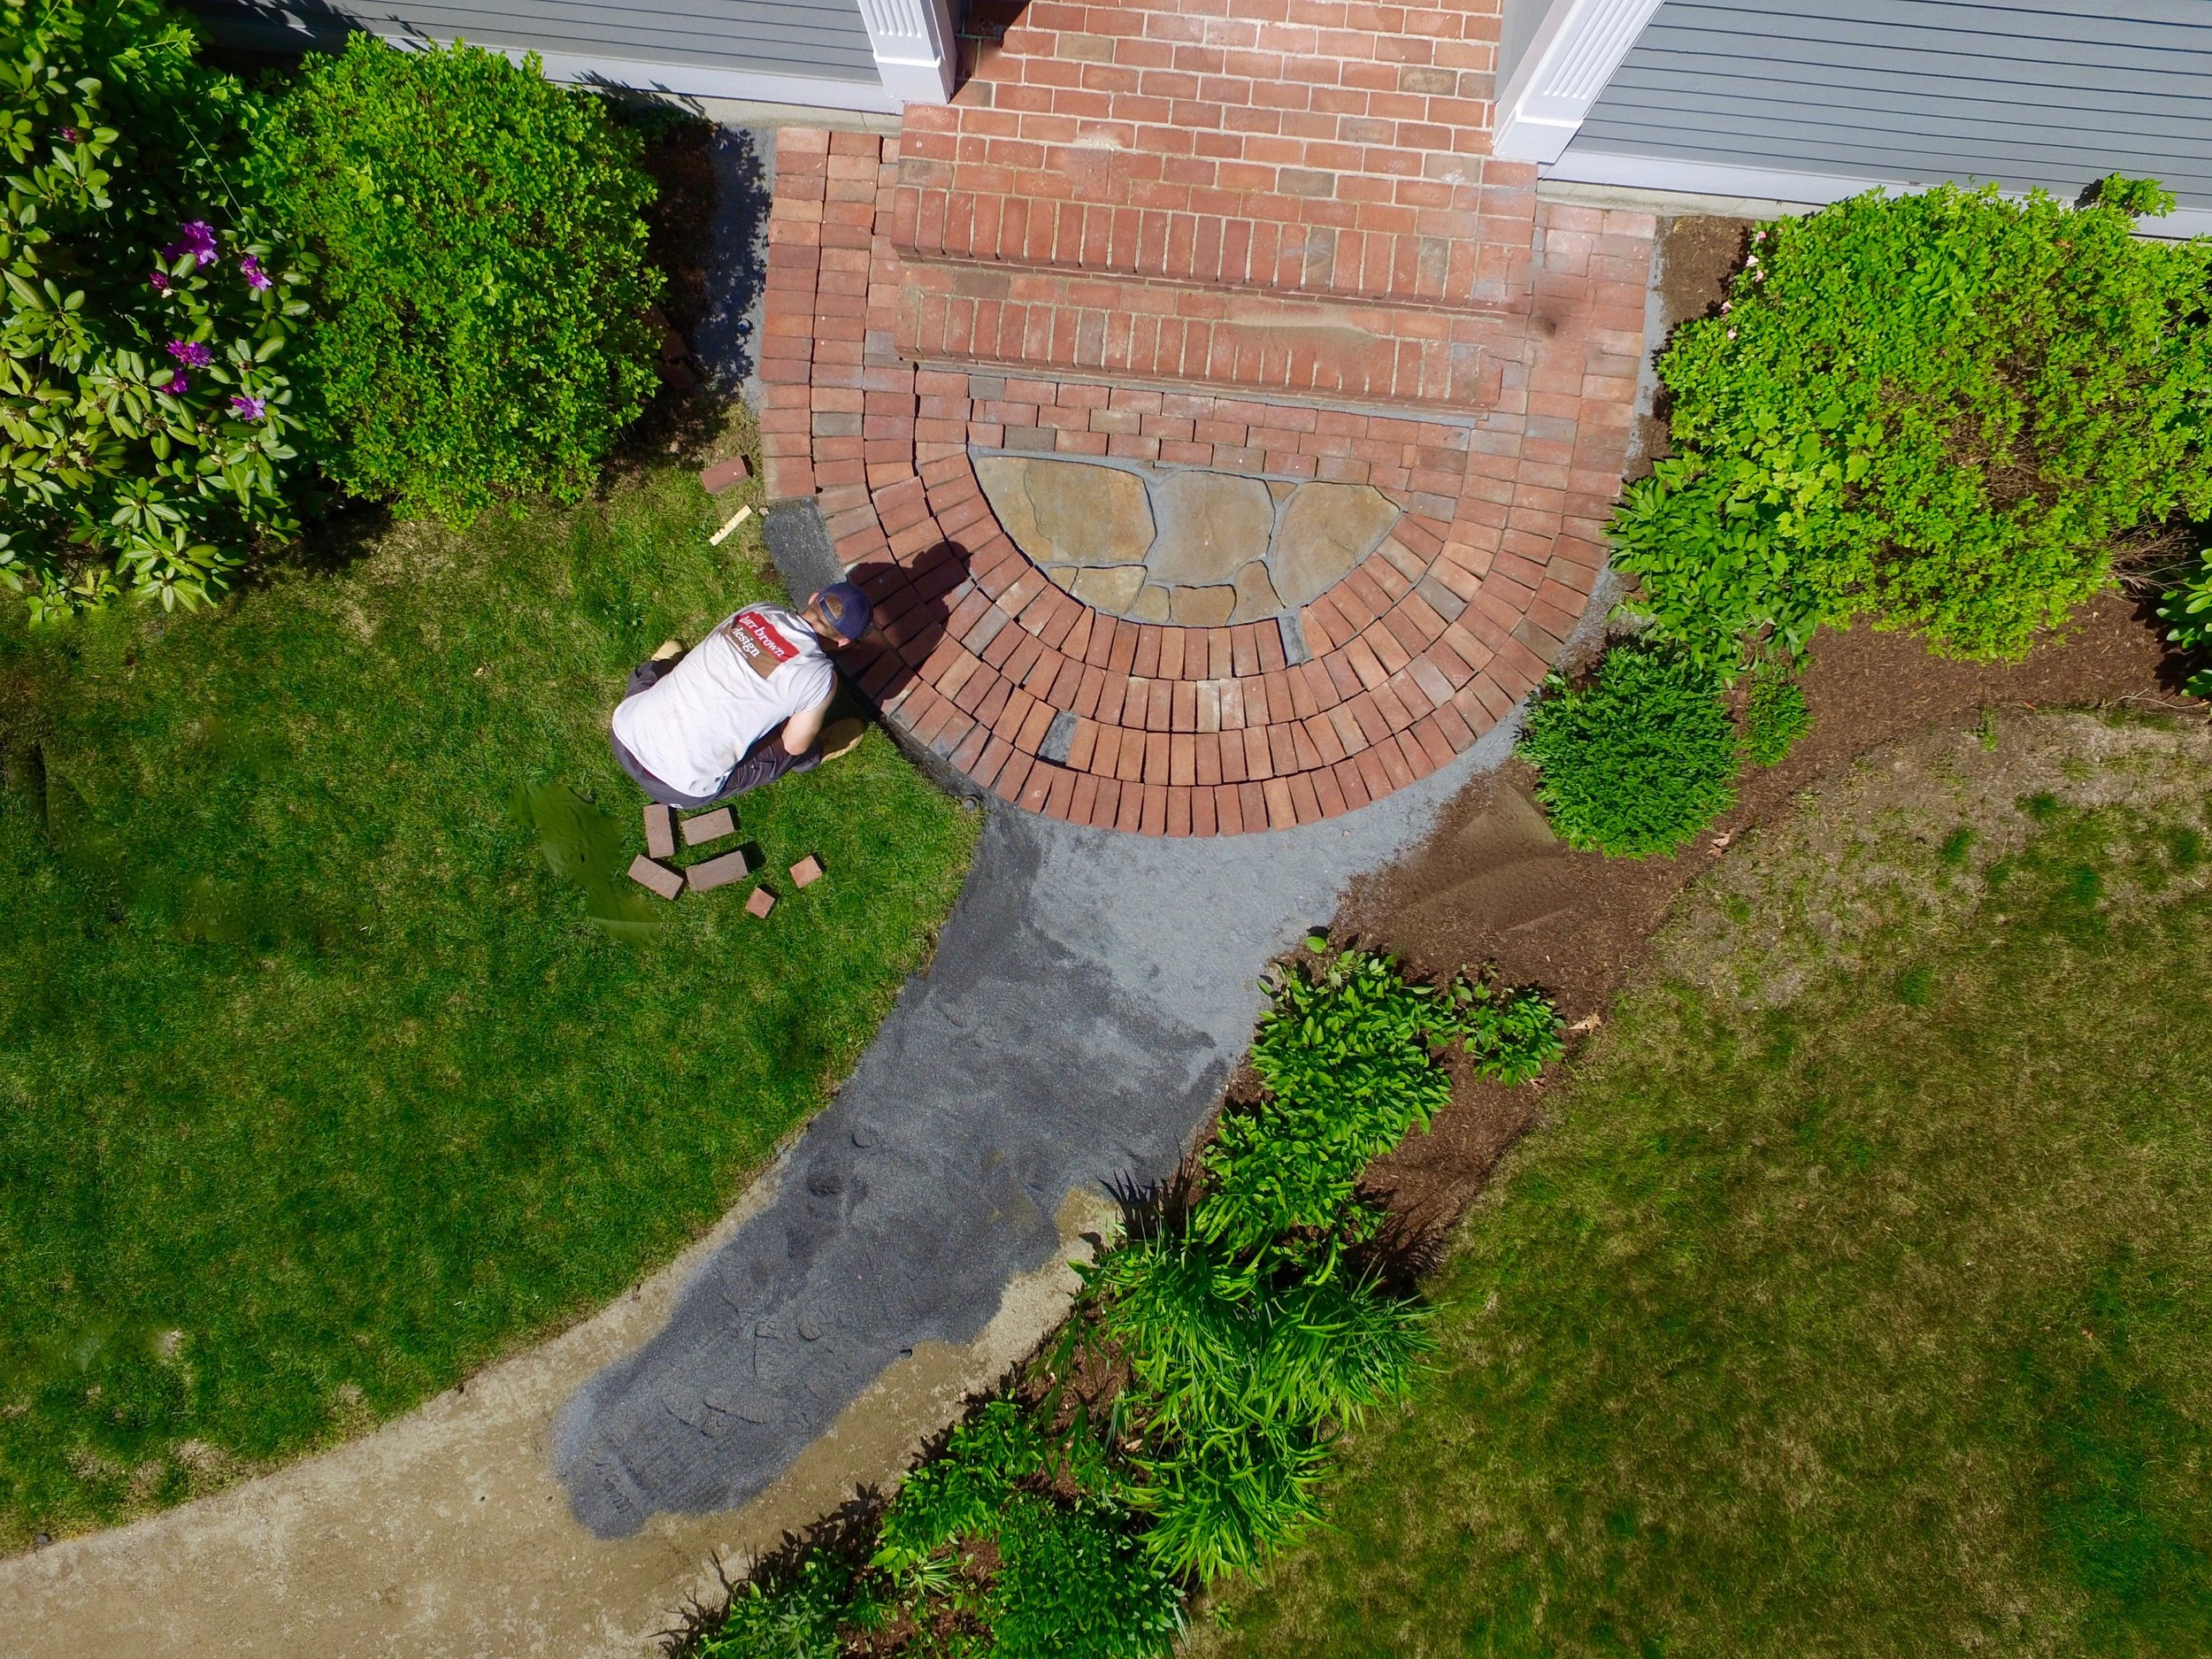 An old brick walkway was meticulously restored when its original bed had become uneven and unsafe.